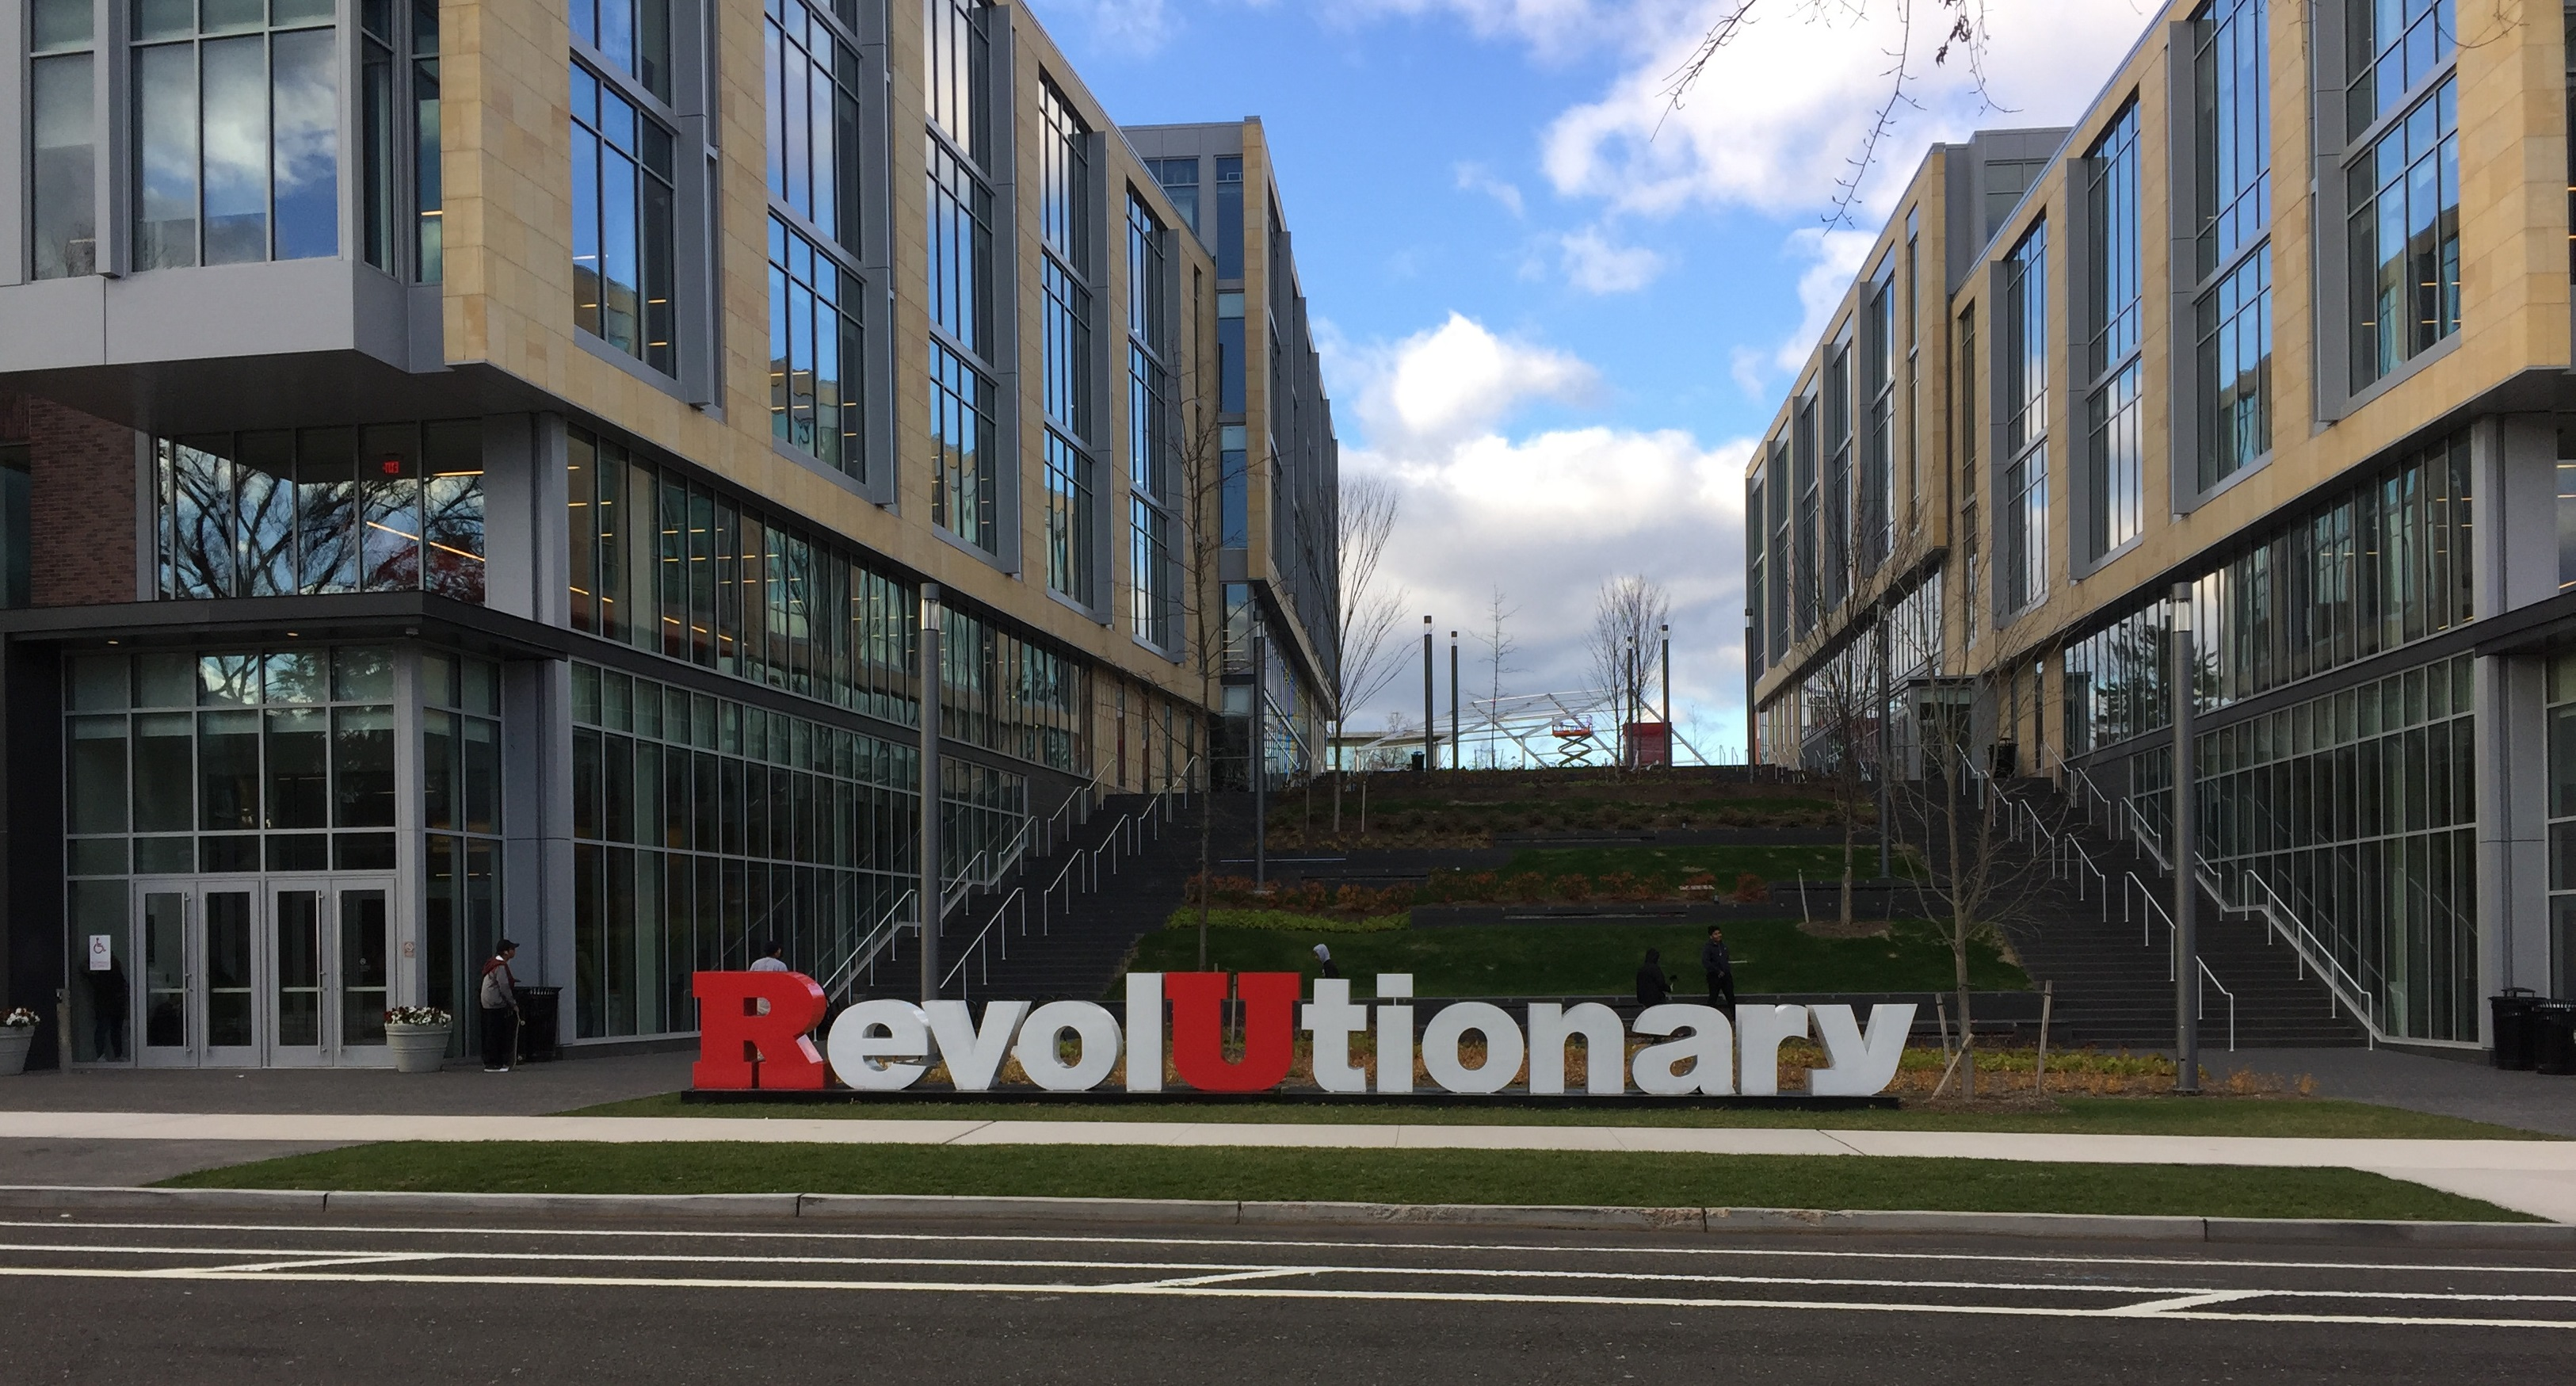 """RevolUtionary"" sculpture at Rutgers University, Dec 2016"